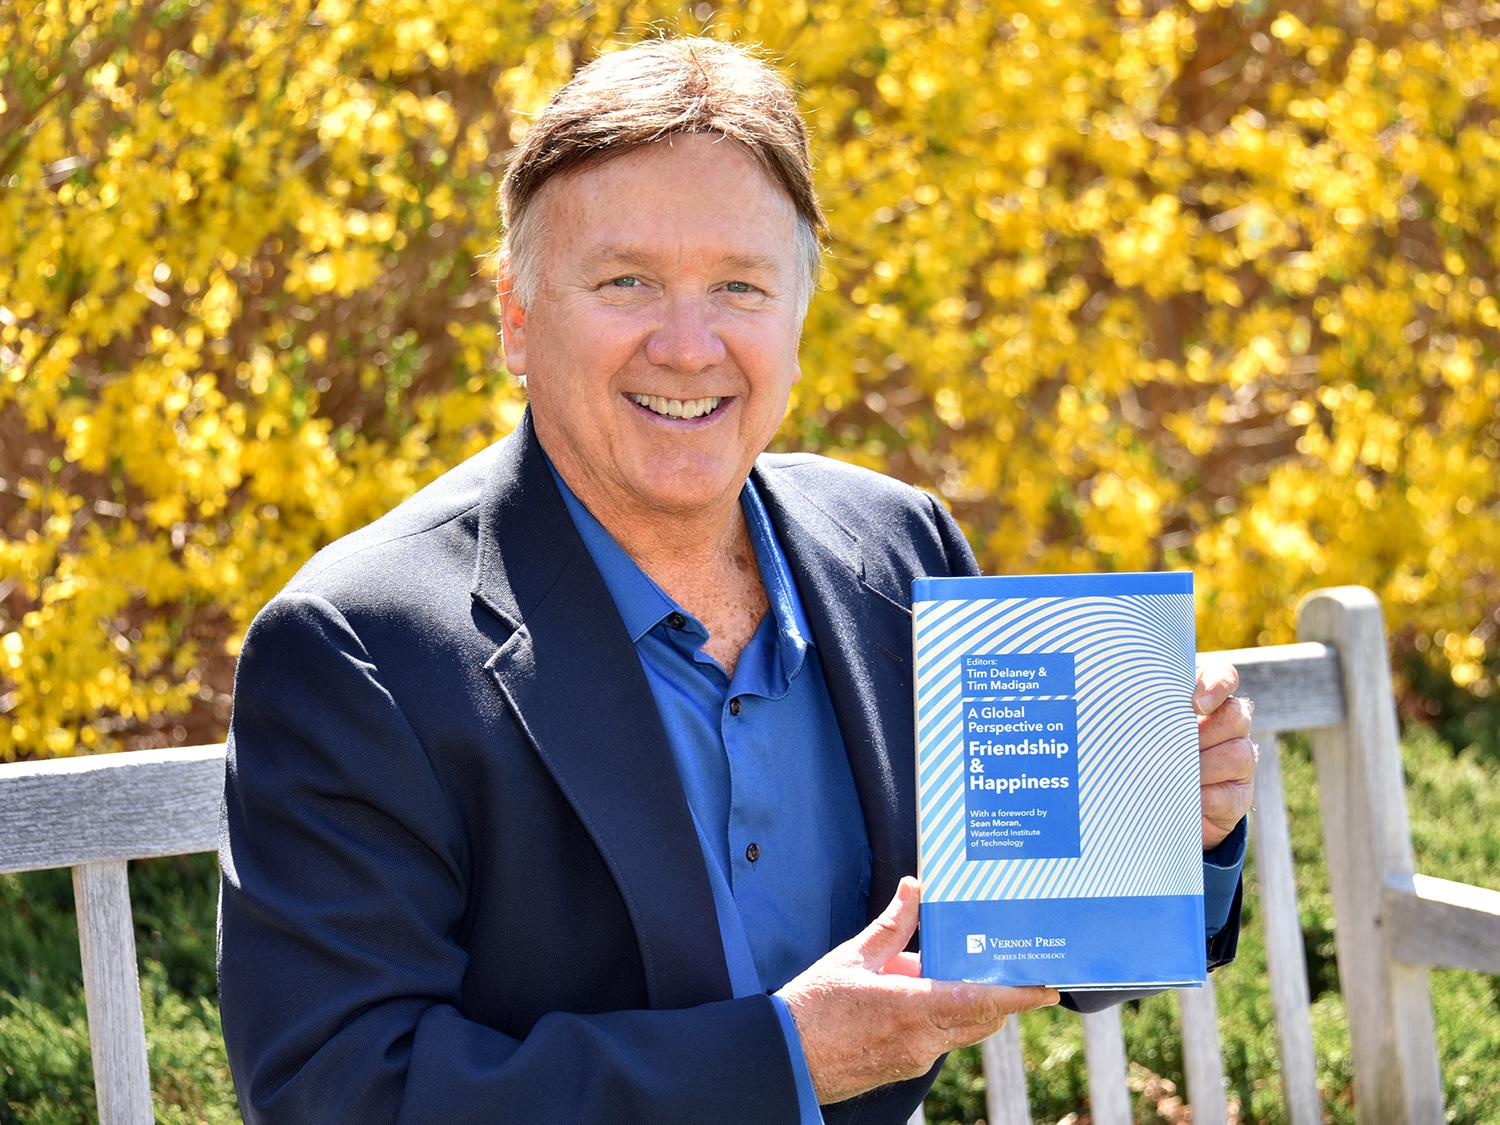 Tim Delaney recently published his 20th book, an edited collection on friendship and happiness